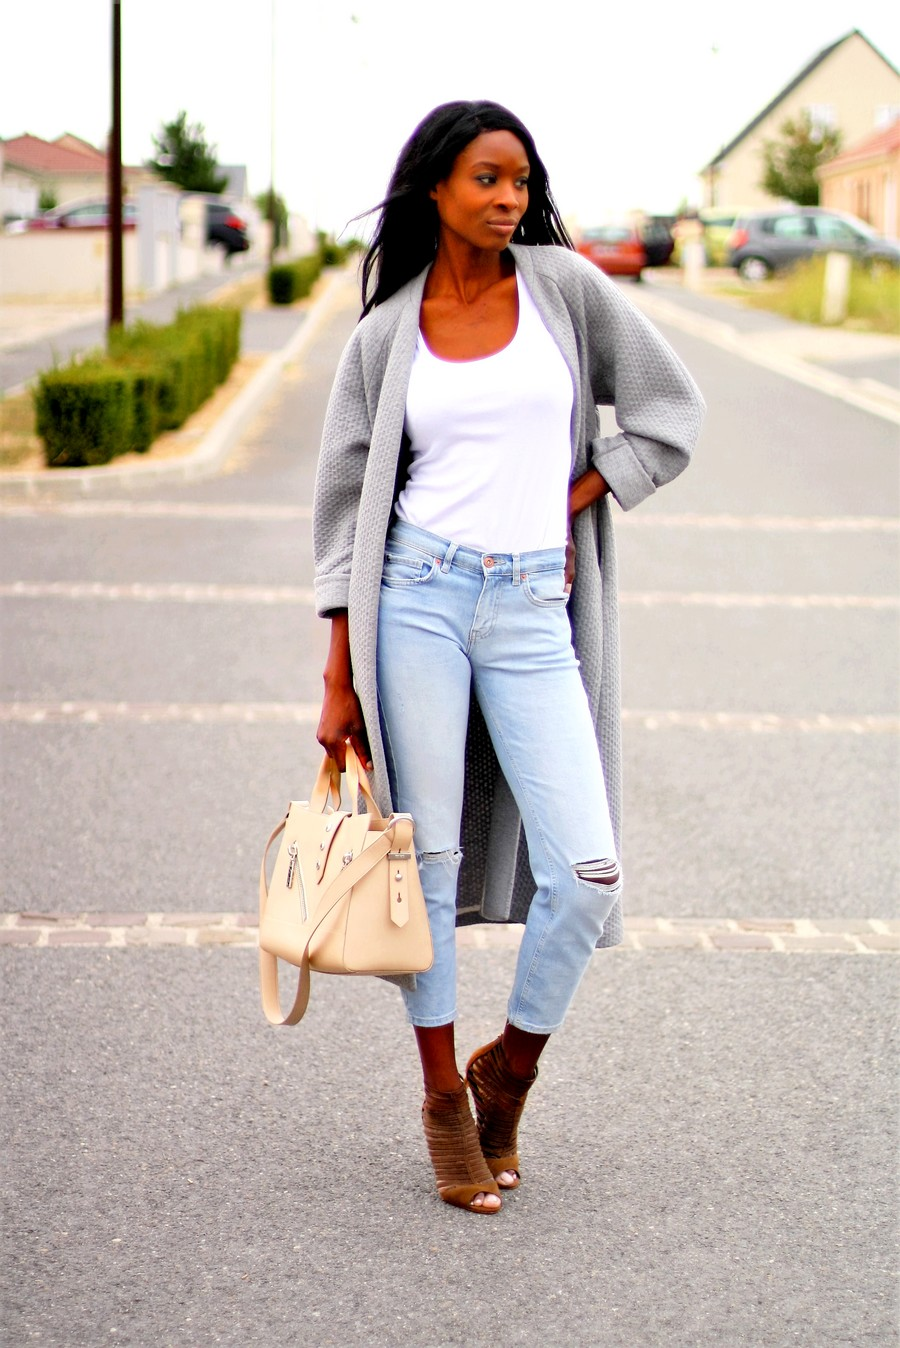 mom-jeans-blogger-style-outfit-idea-transition-look